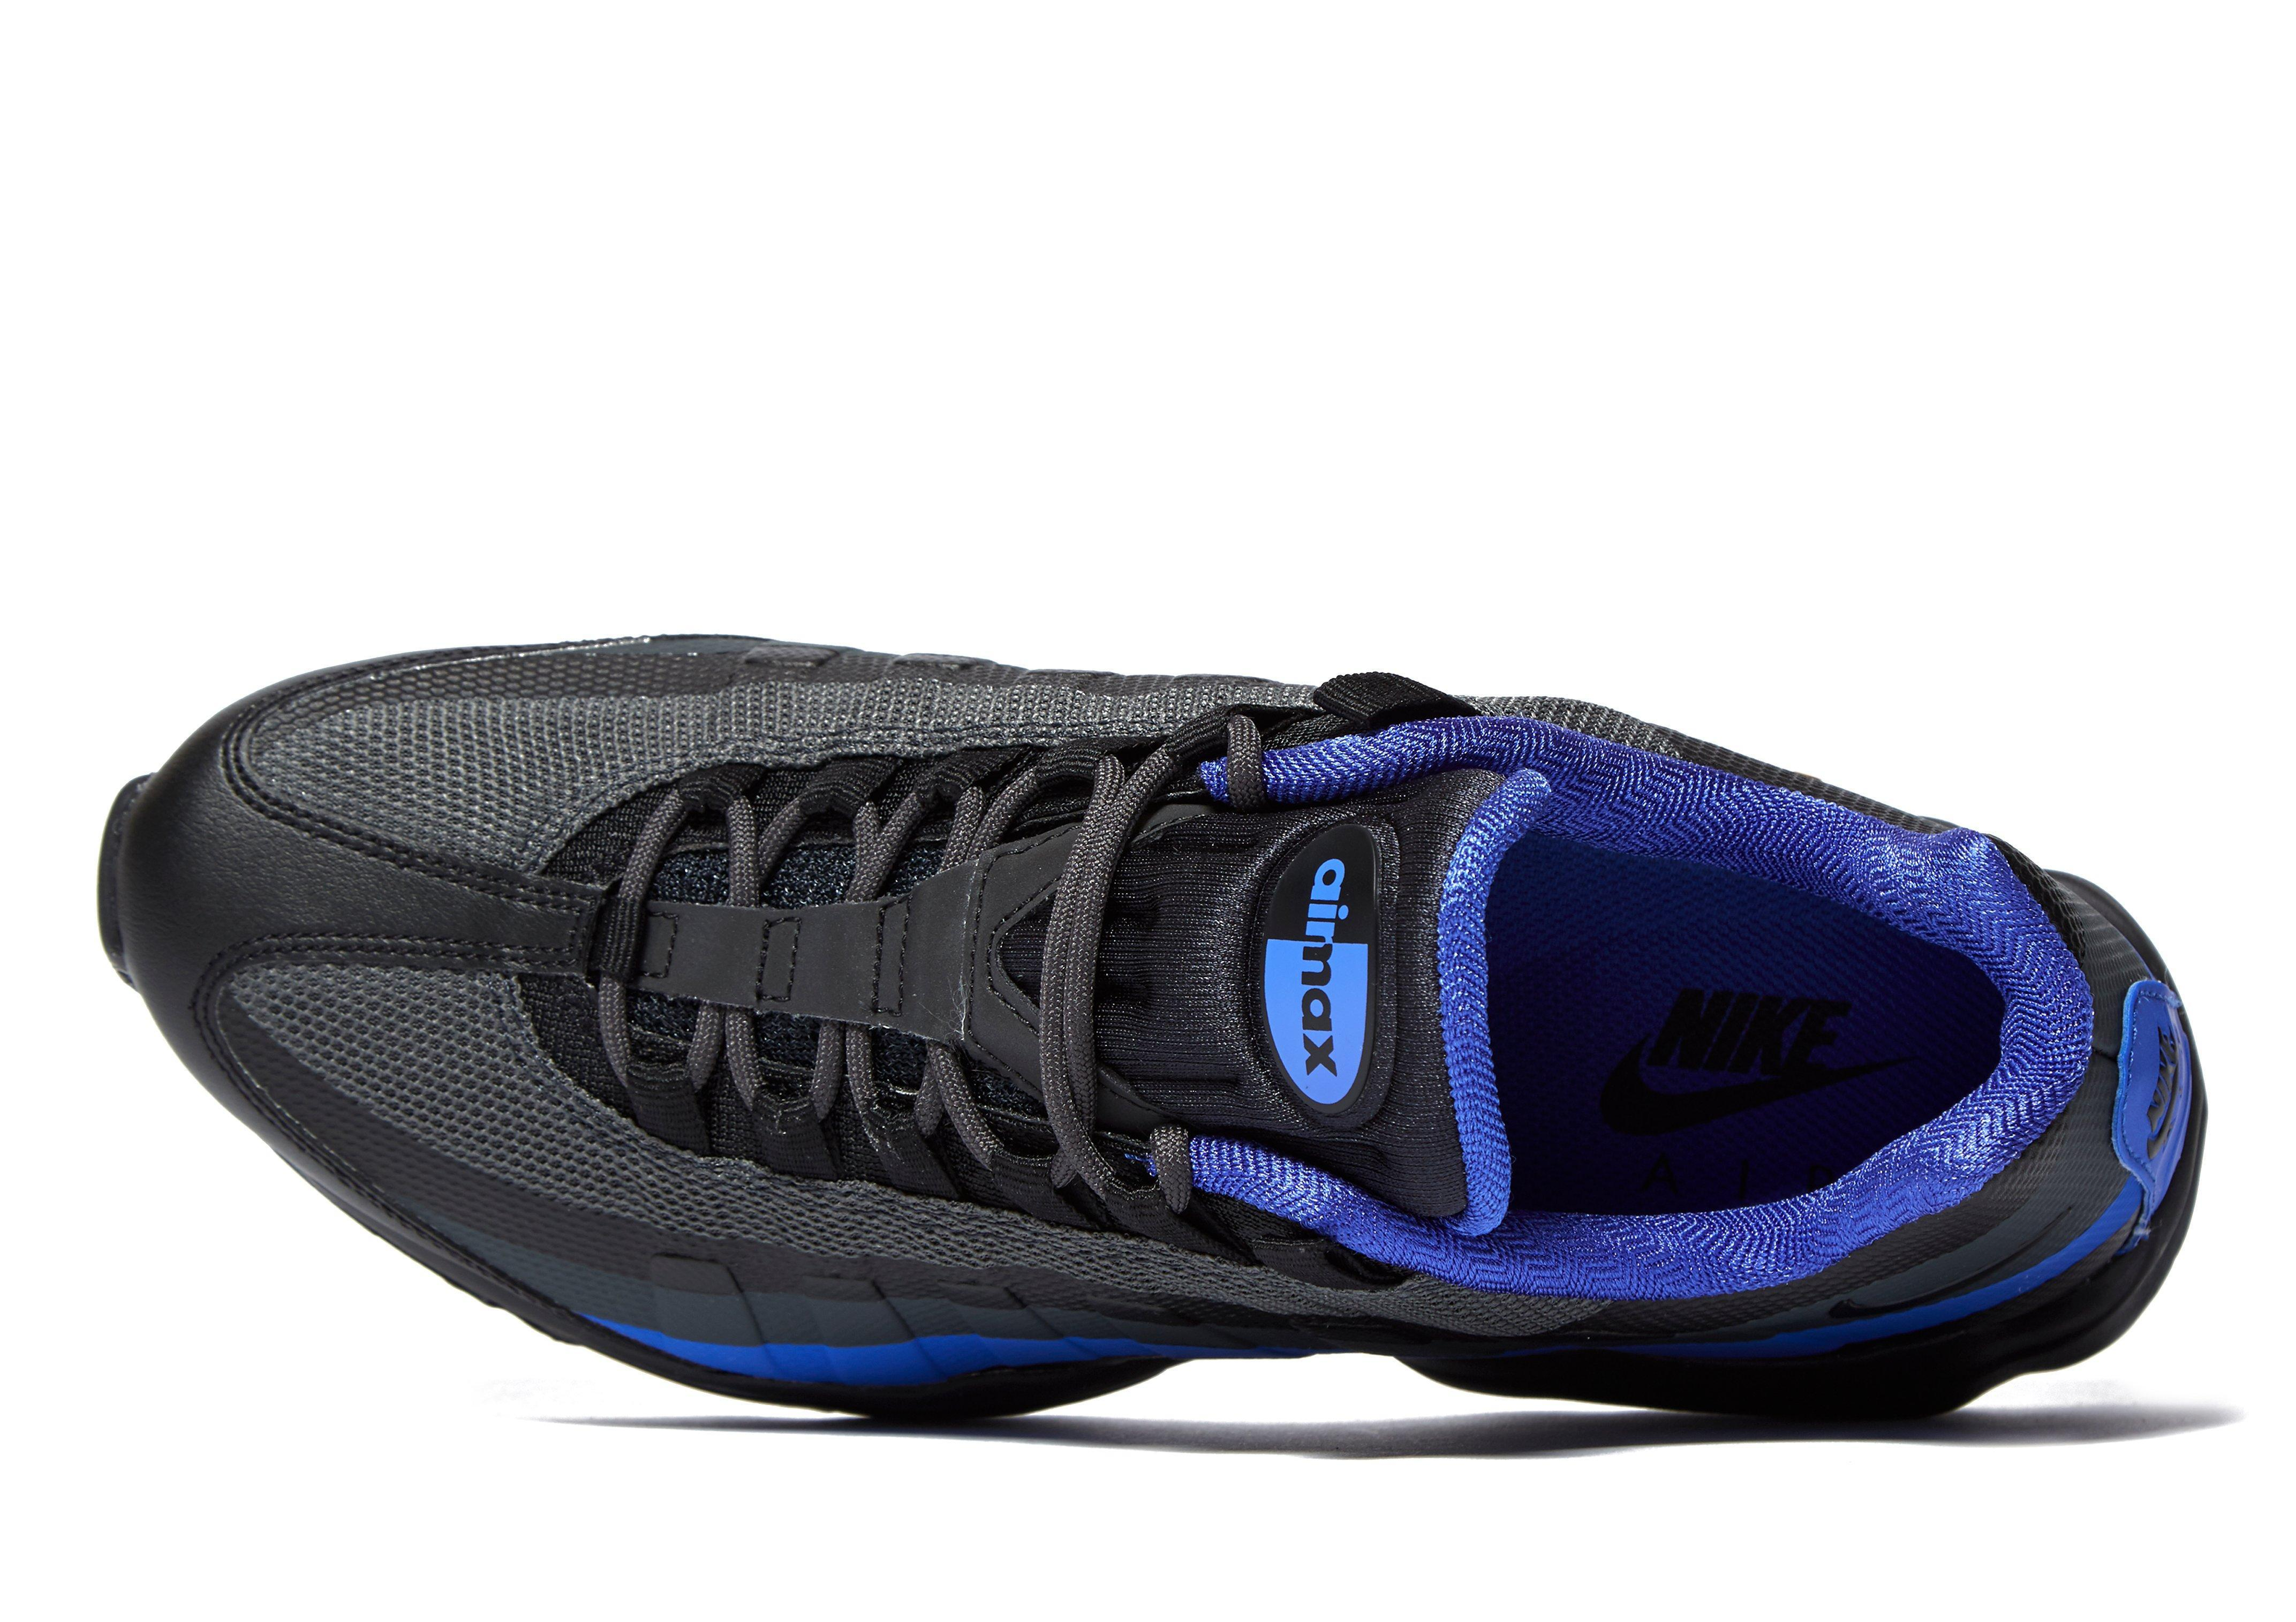 Nike Synthetic Air Max 95 Ultra Essential in Black/Blue (Blue) for ...